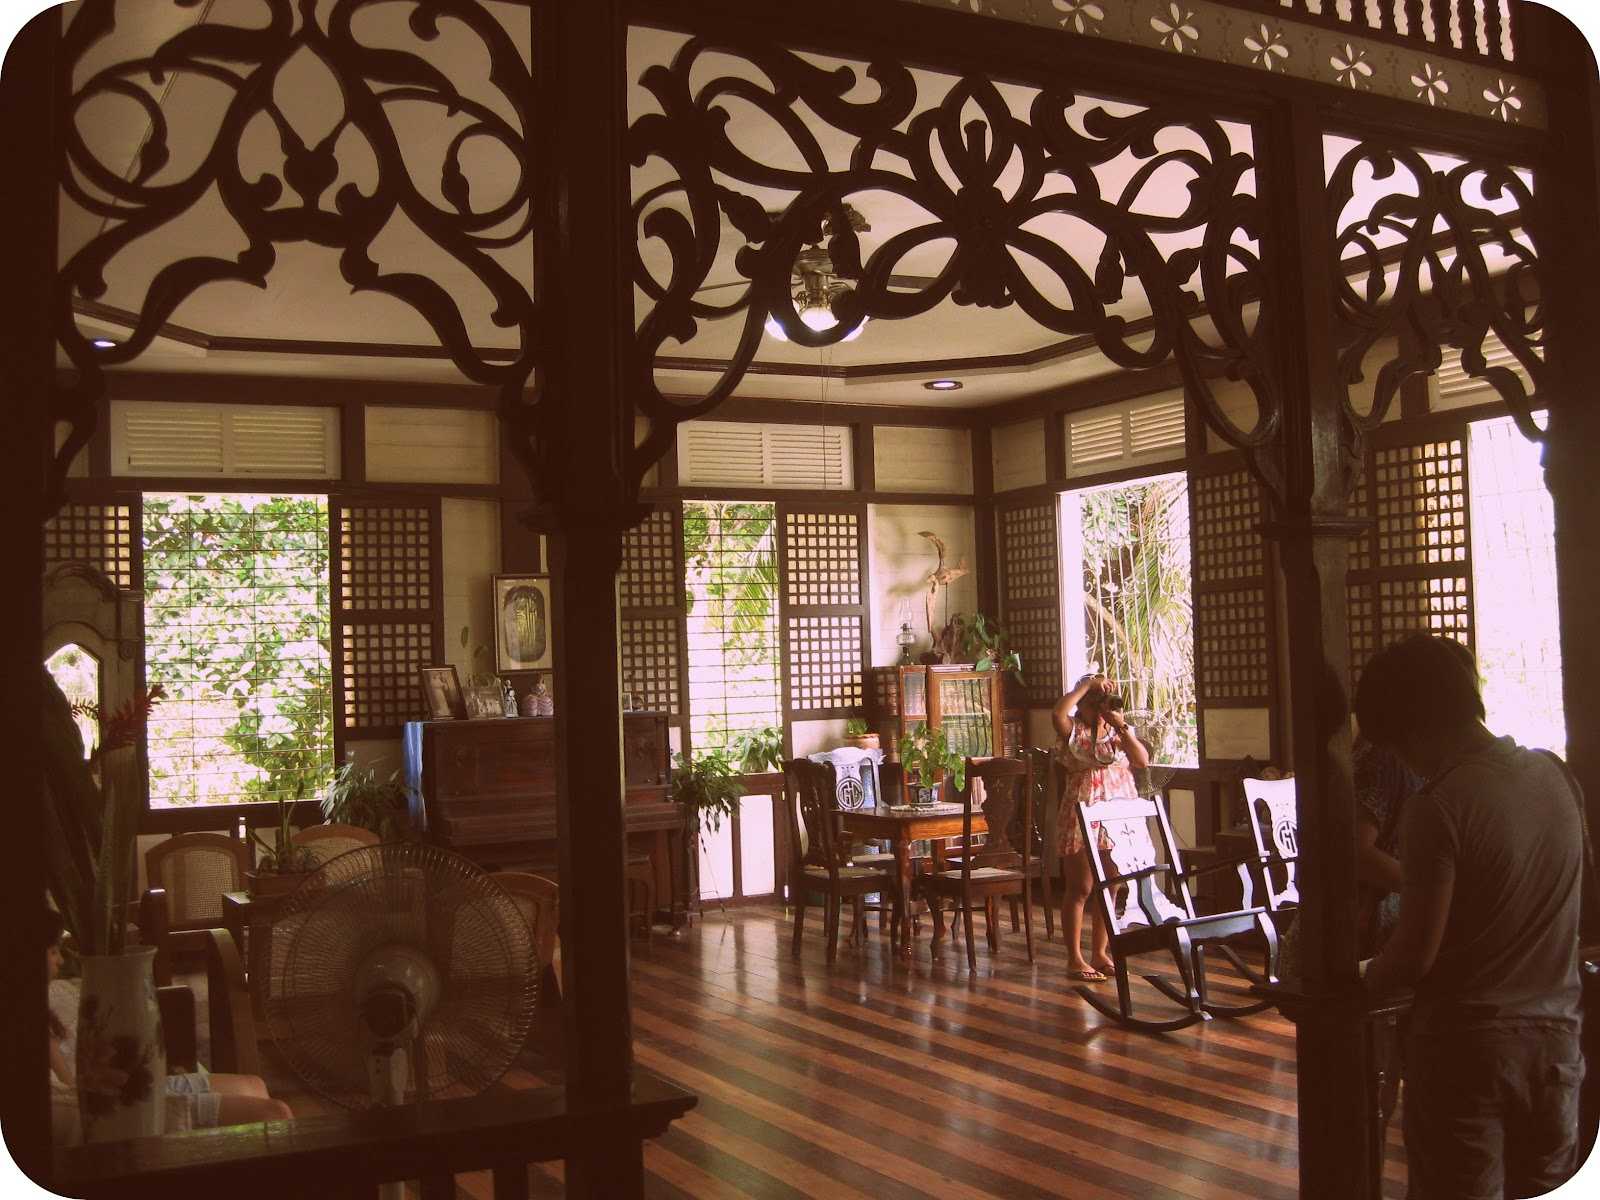 Turning boholano cloribel house a grand ancestral home for Wallpaper home philippines